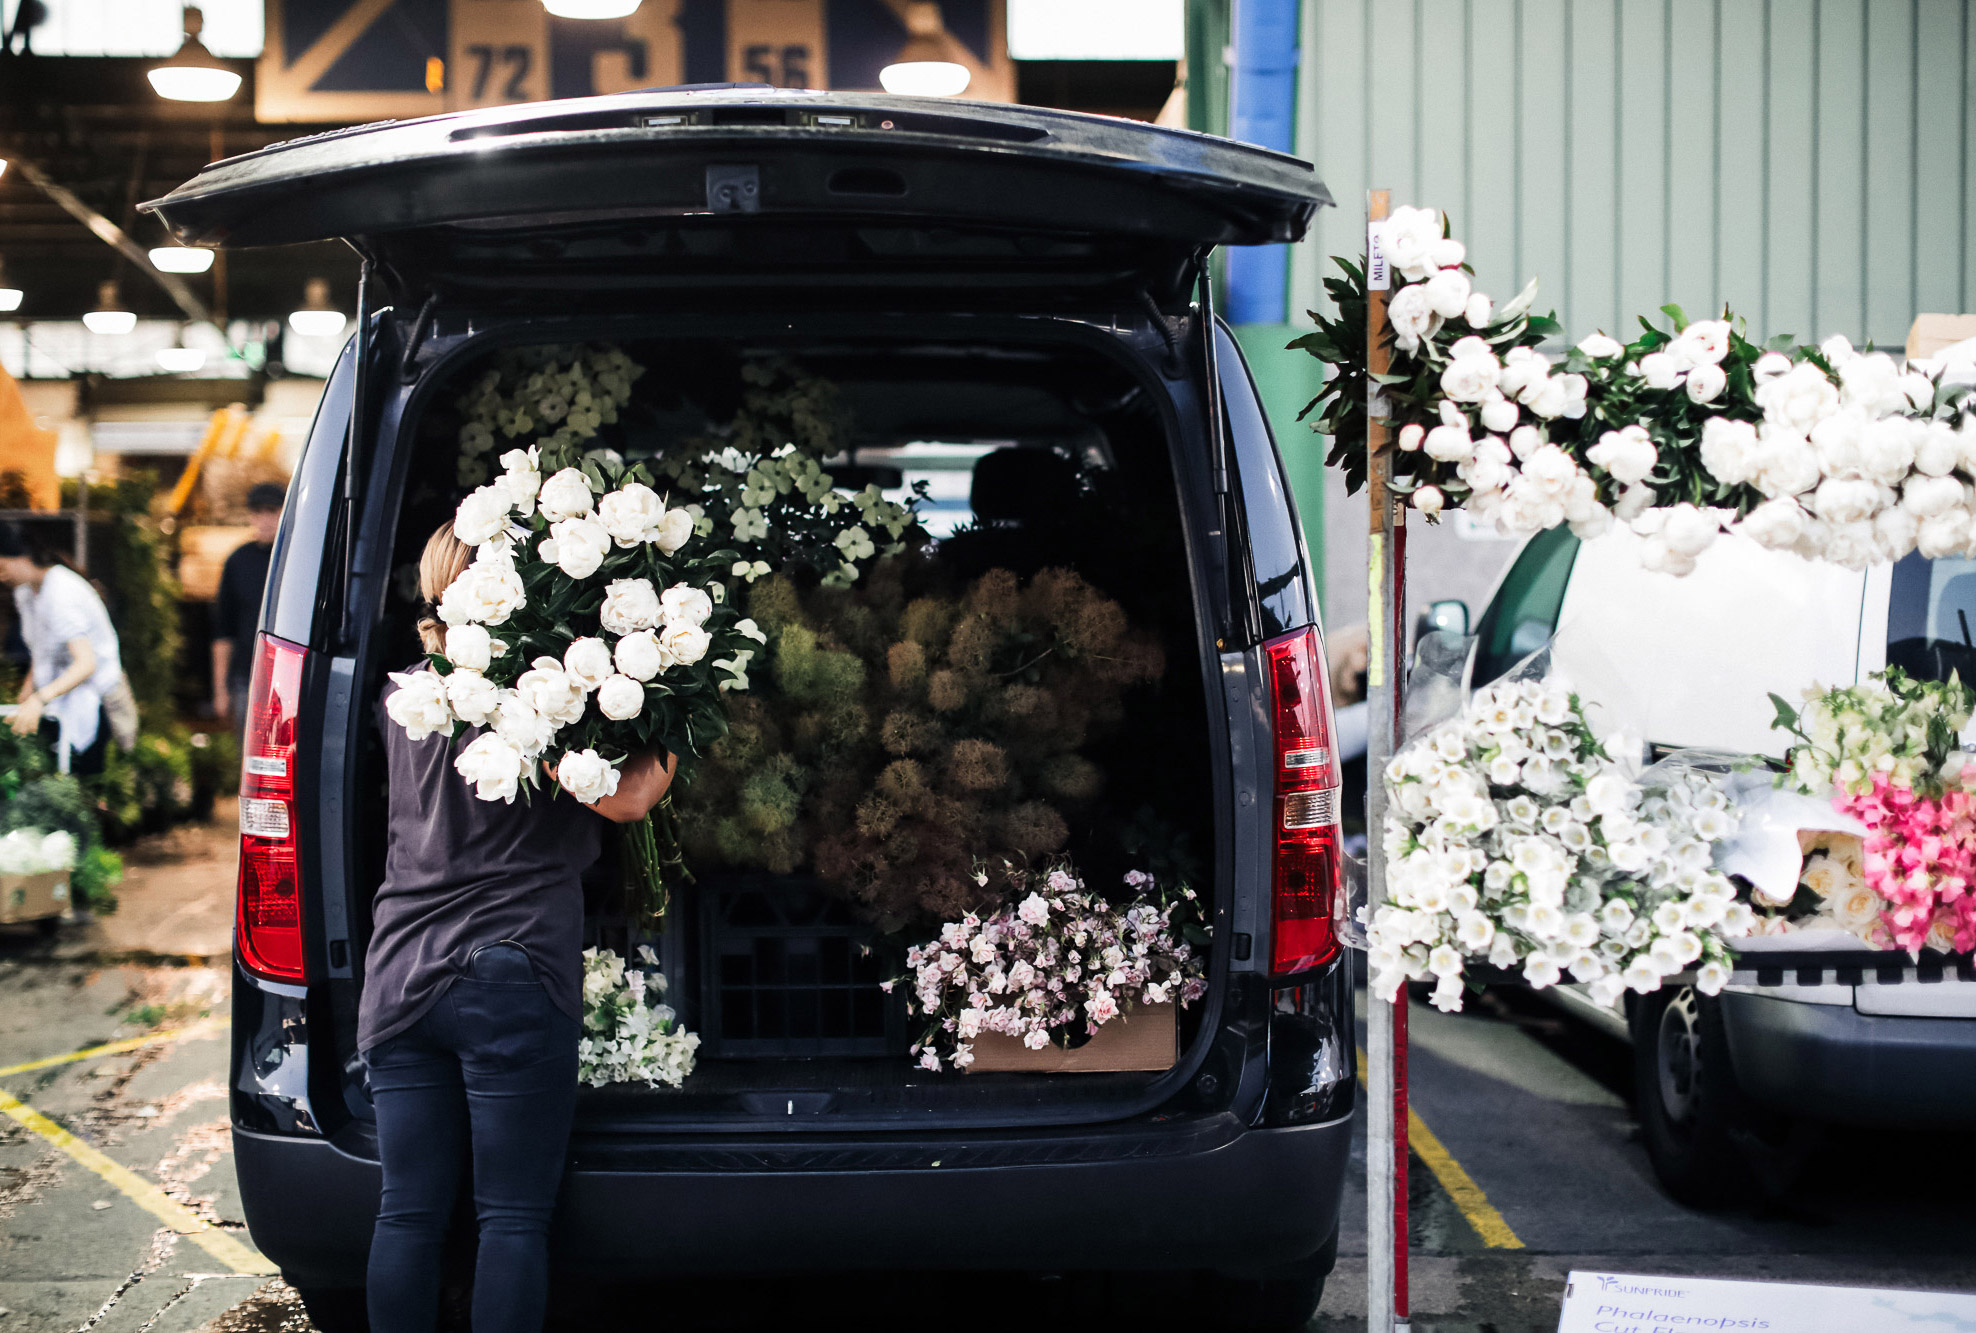 A day in the life of florist Myra Perez